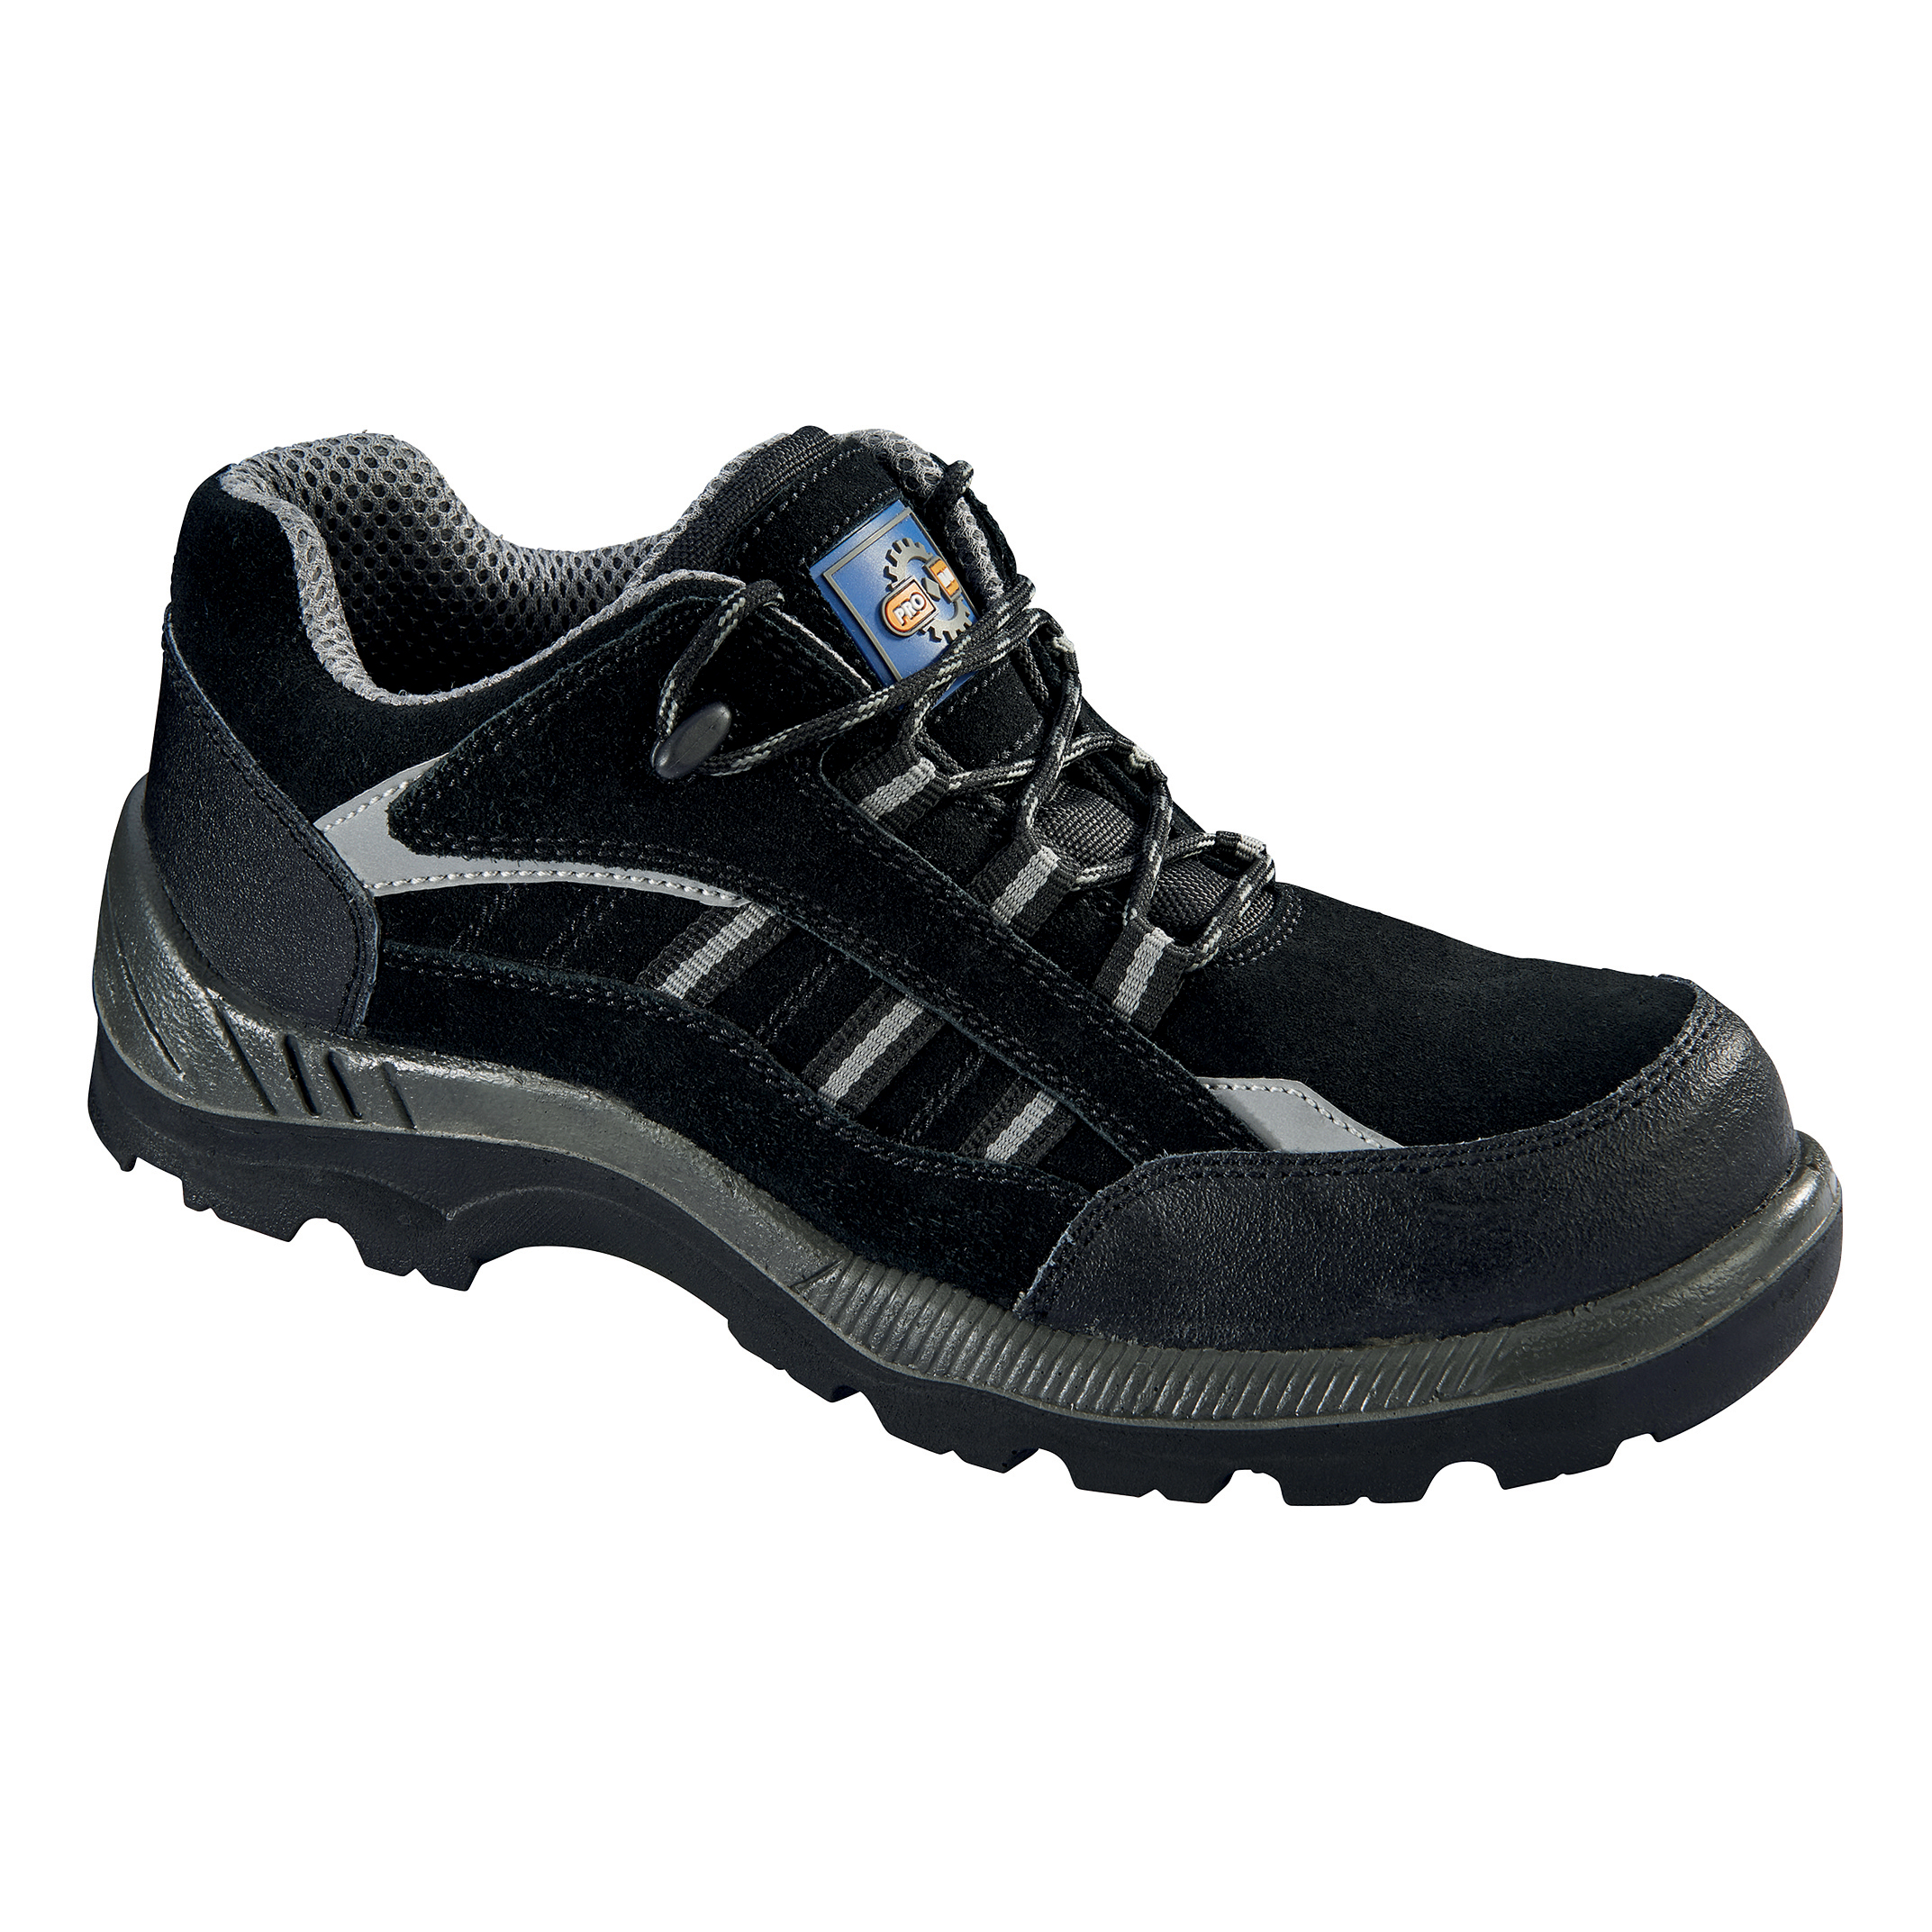 Safety shoes Rockfall ProMan Trainer Suede Fibreglass Toecap Black Size 12 Ref PM4040 12